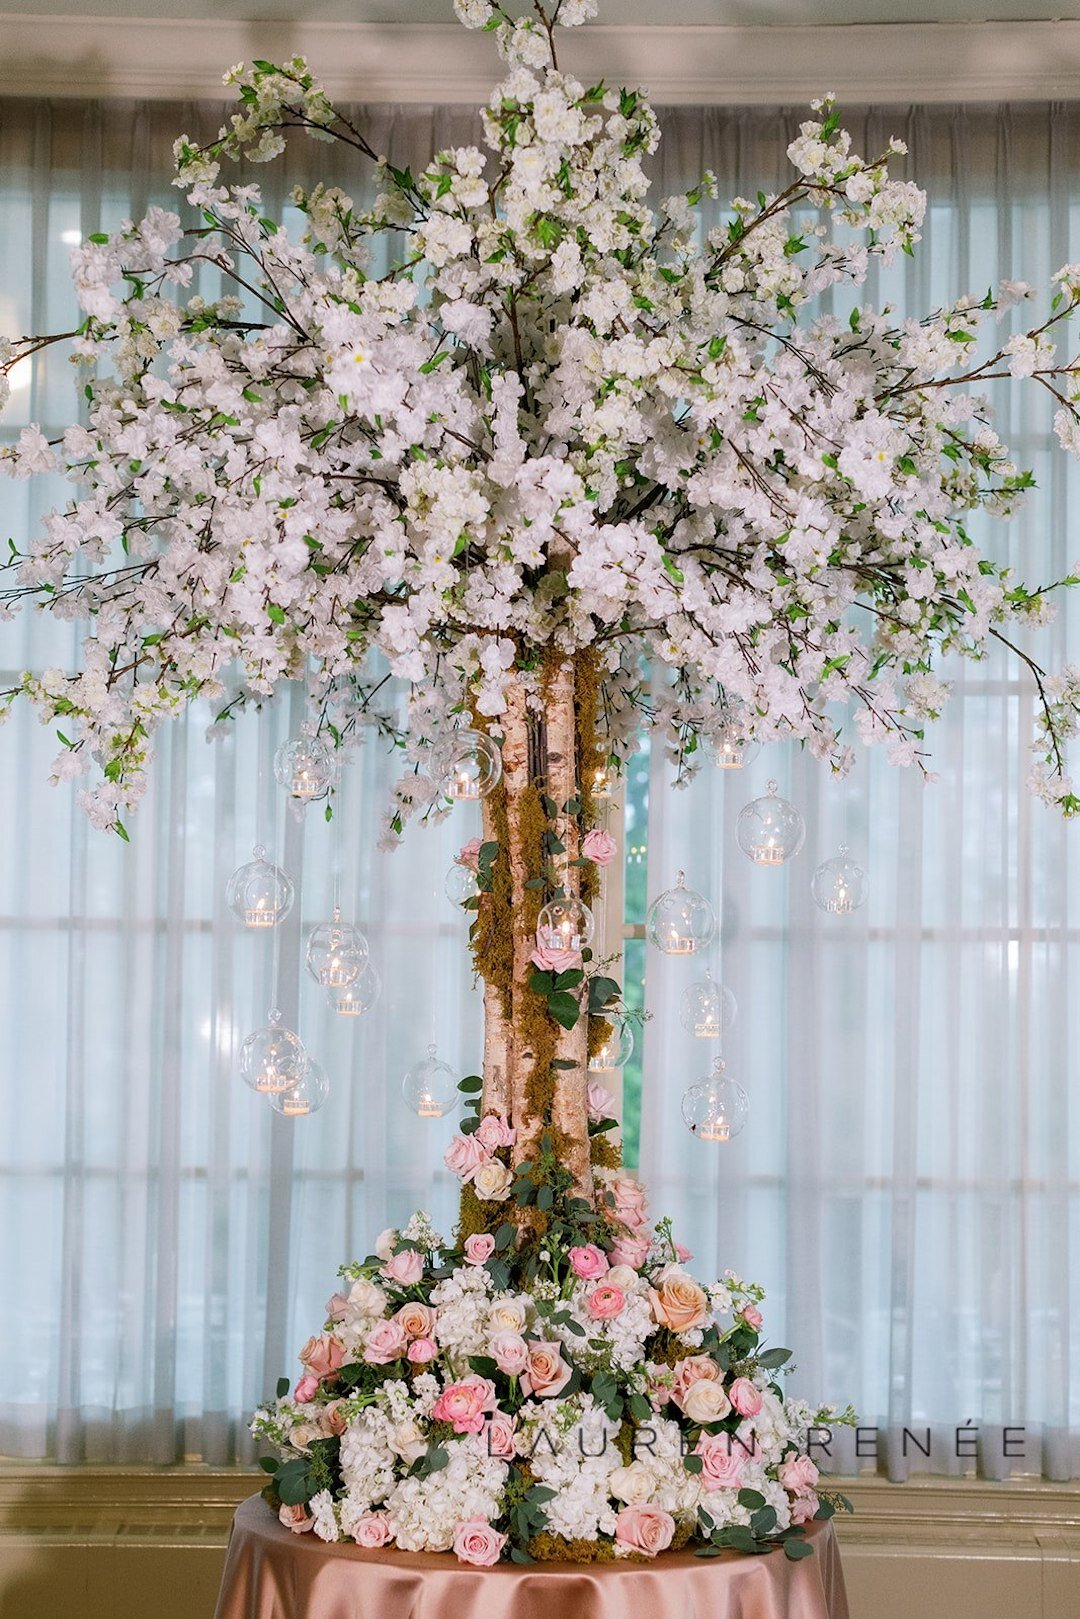 Unique wedding decor idea : Romantic Blush Wedding at the Pittsburgh Field Club planned by Exhale Events. See more at exhale-events.com!